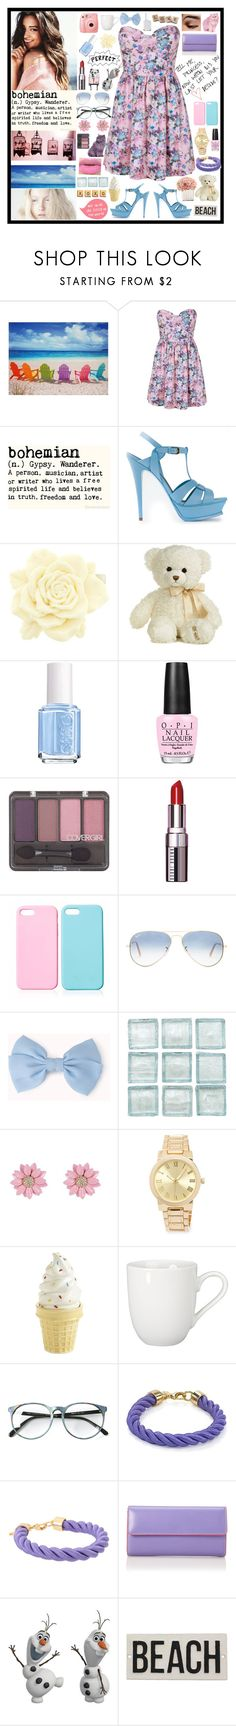 """i'm a bohemian"" by tiny-girl-big-heart ❤ liked on Polyvore featuring WALL, Boob, Yves Saint Laurent, Aurora World, Fujifilm, Essie, OPI, COVERGIRL, Bobbi Brown Cosmetics and Ray-Ban"